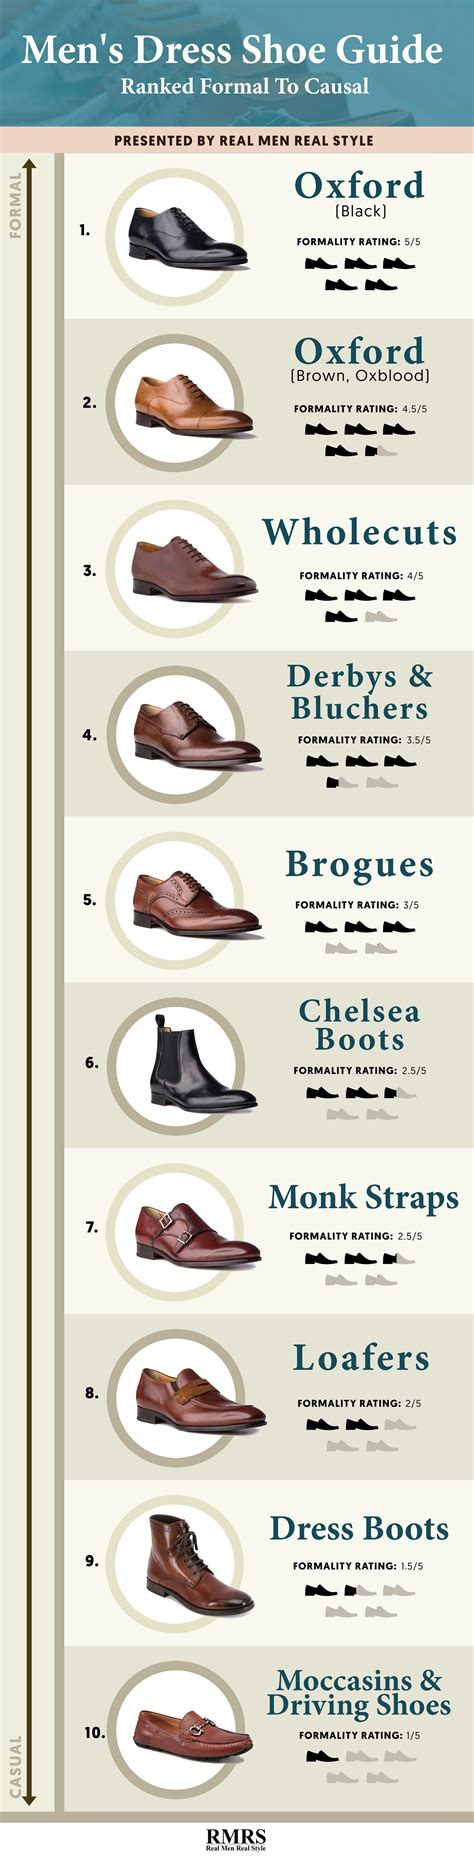 dress shoes ranked formal  casual infographic